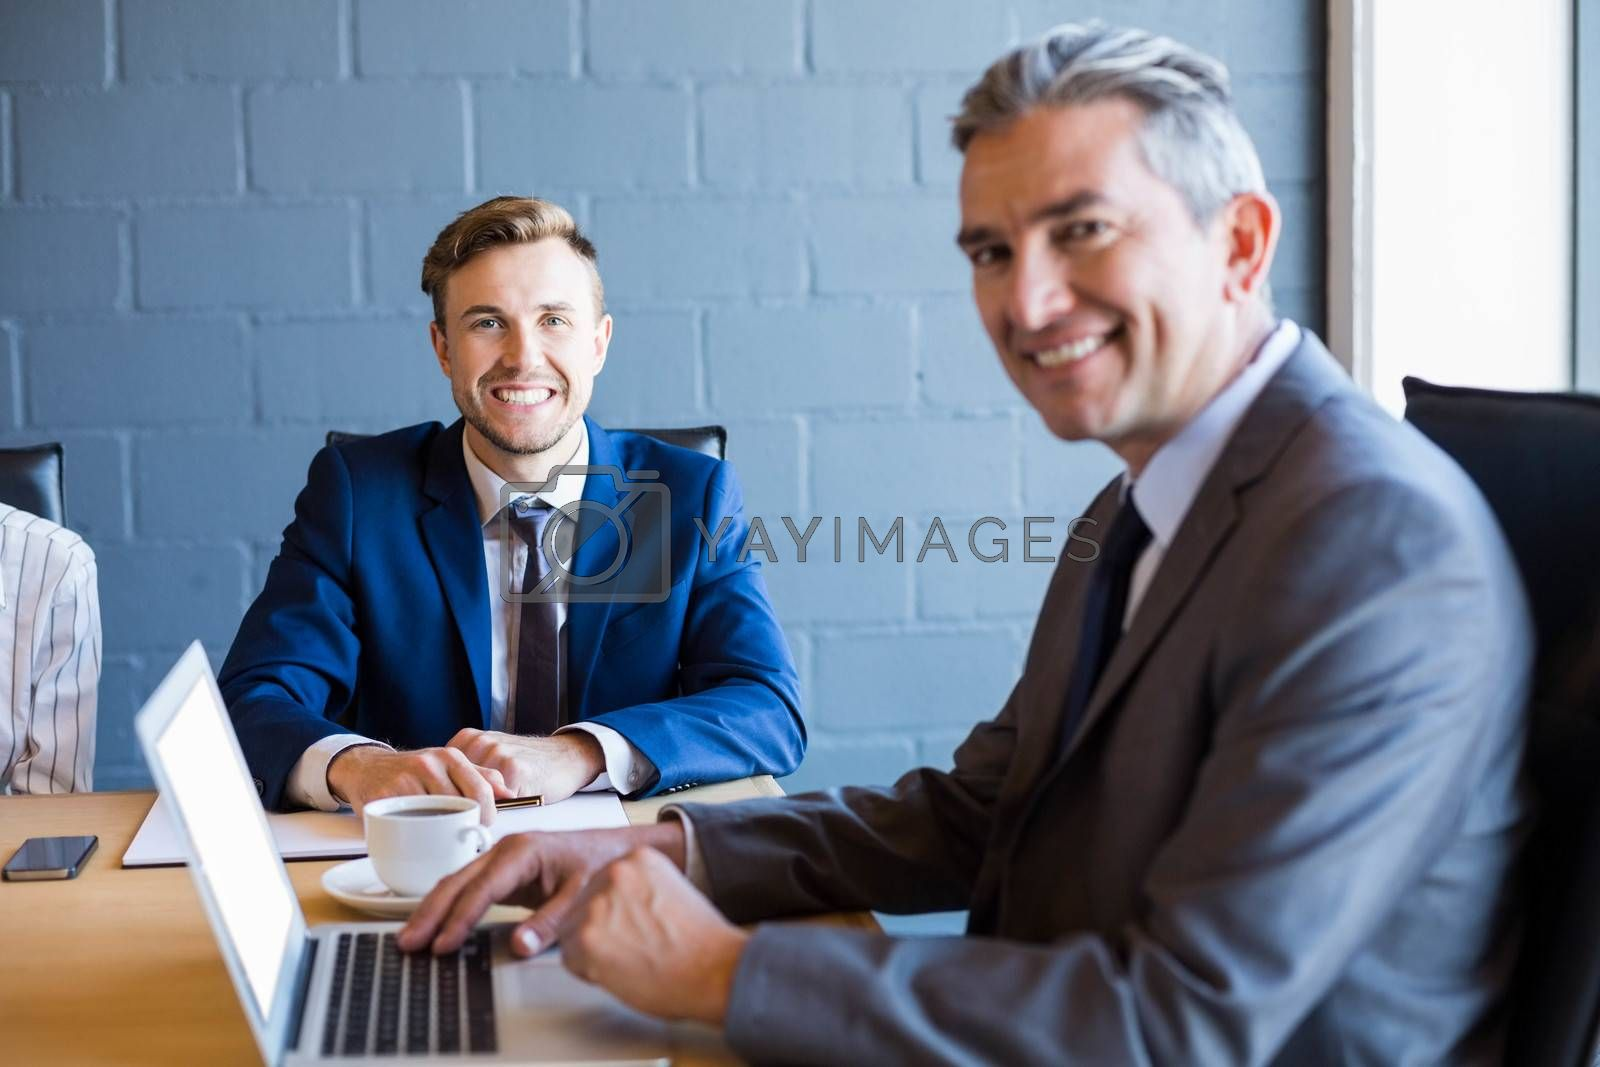 Businessman working on laptop in a conference room during meeting at office